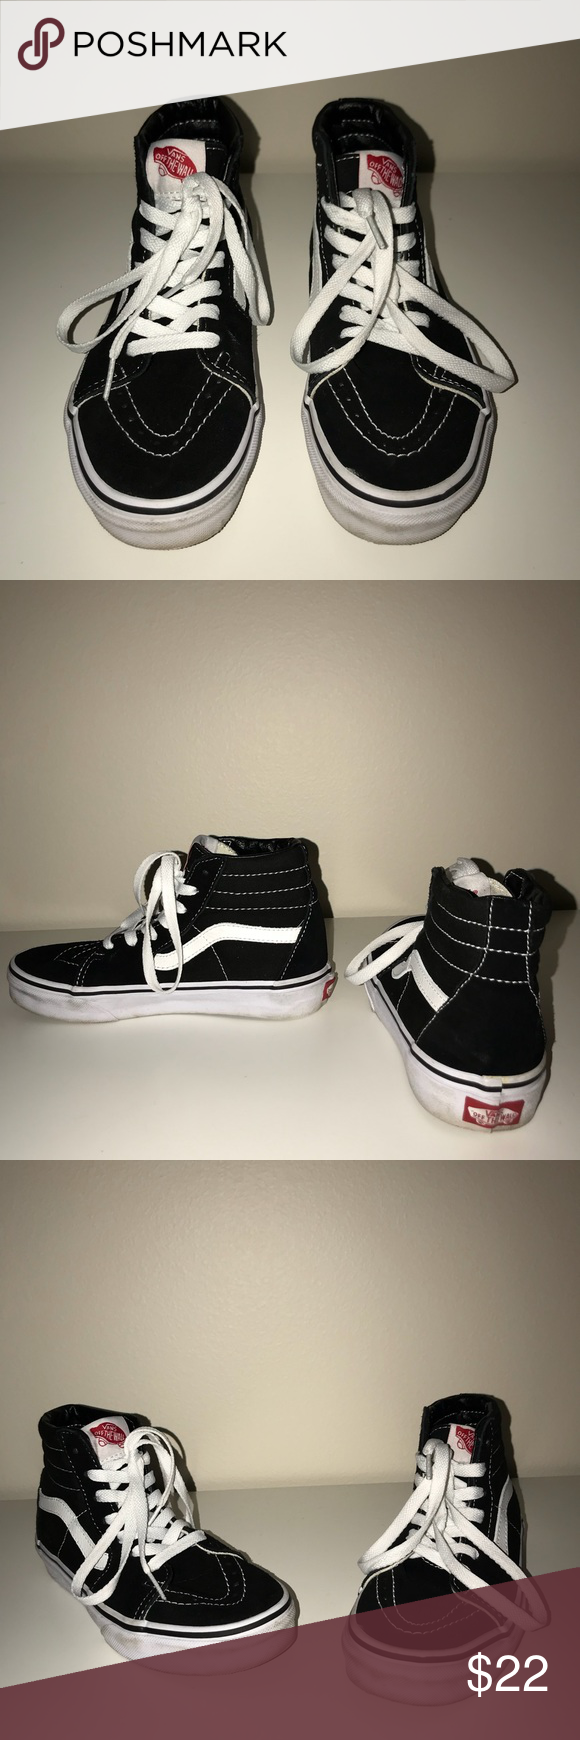 a5b84abdbe Vans Sk8-Hi Vans black and white sk8-hi s. Kids mens 3 1 2 and womens 5.  Worn out twice